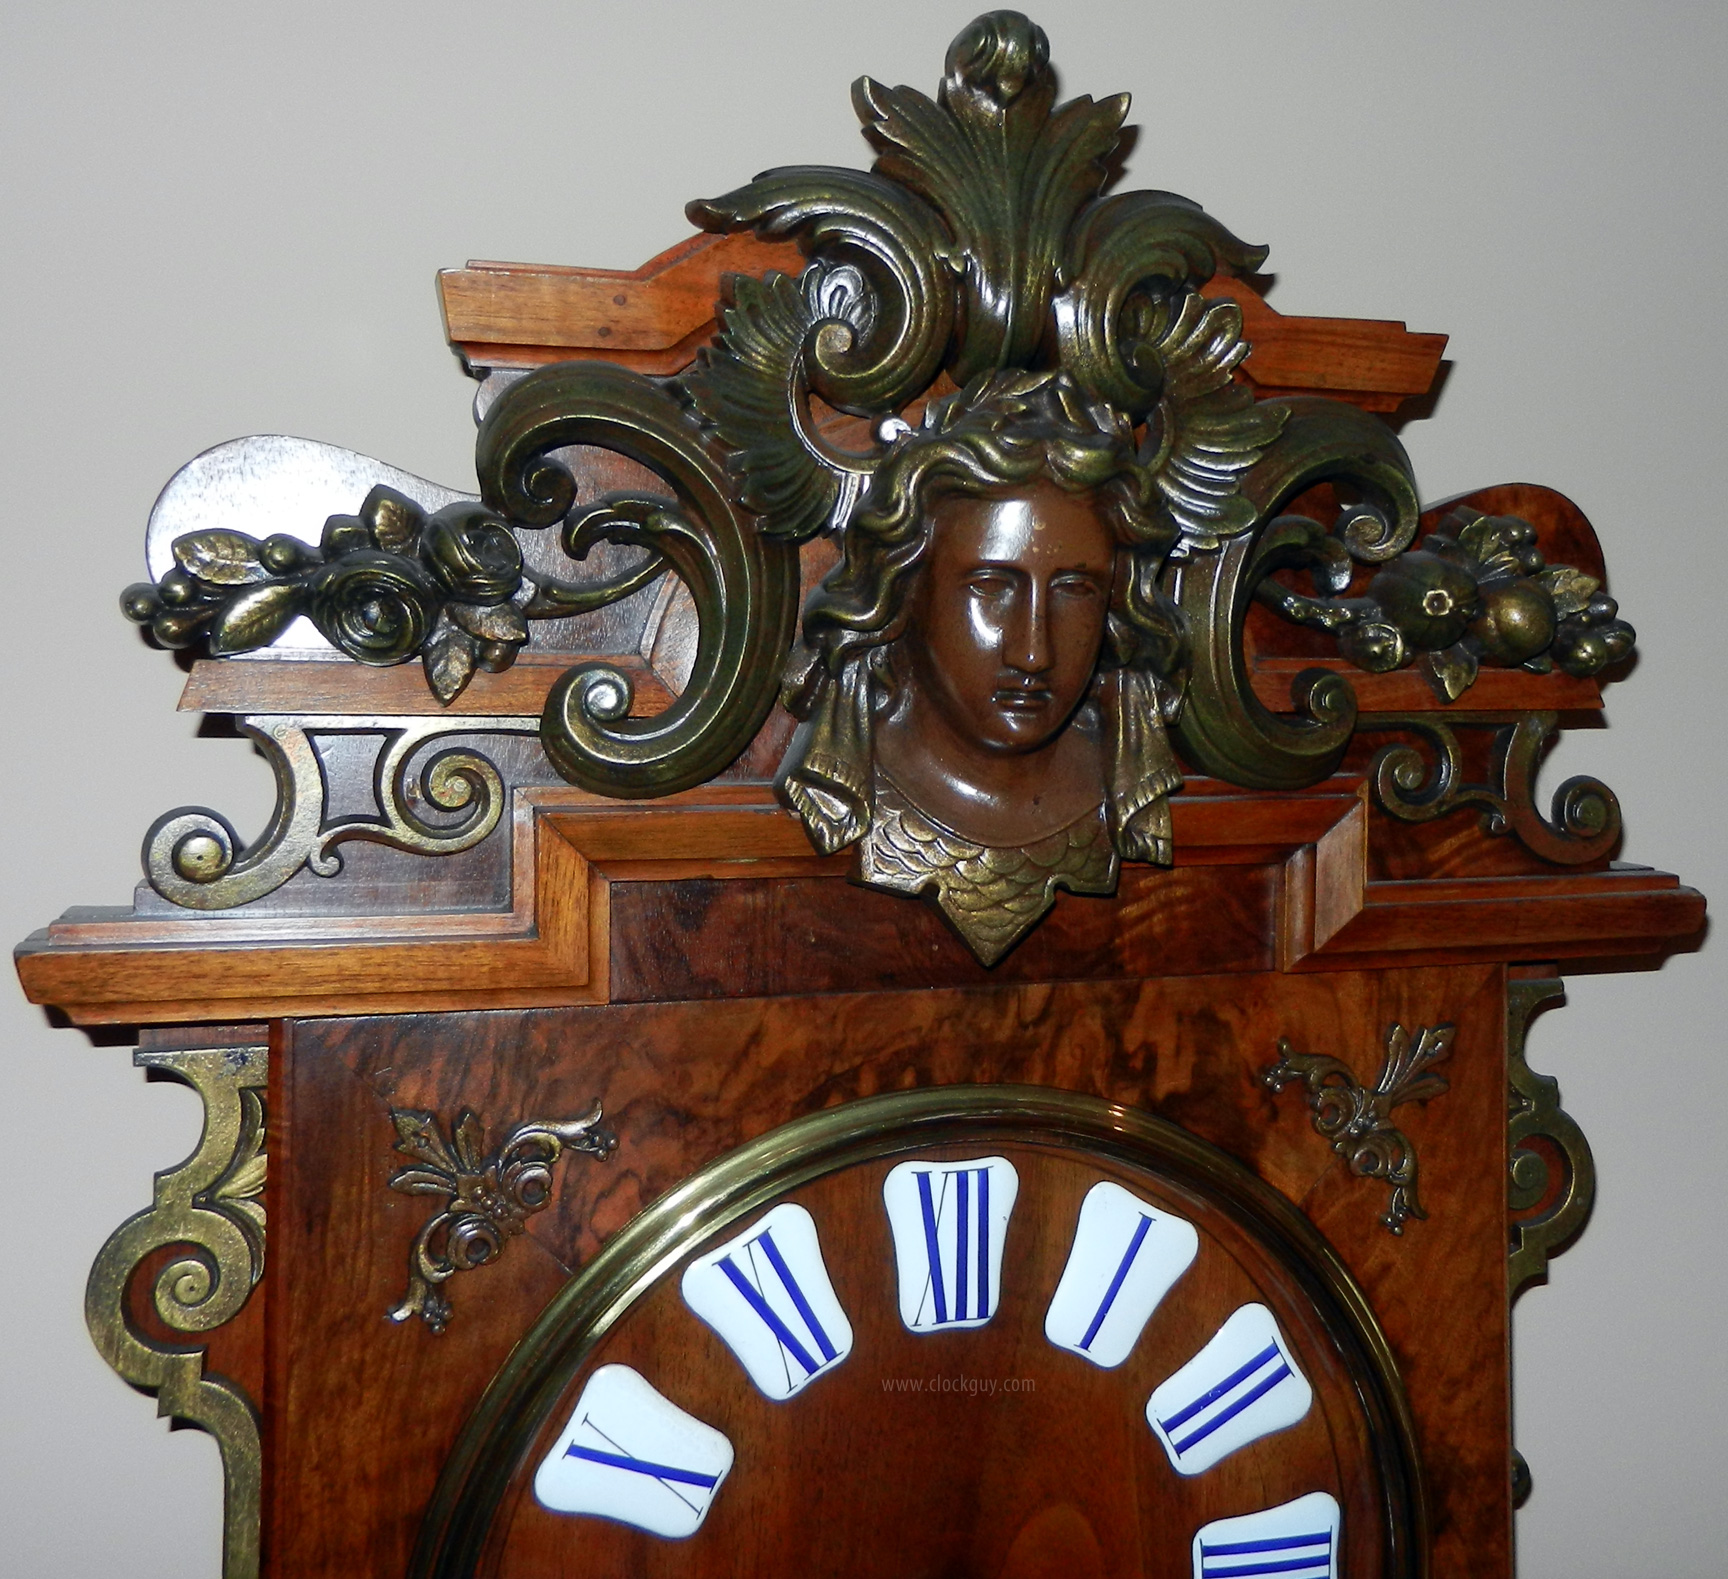 Antique clocks guy we bring antique clocks collectors and buyers ornate french wall clock with gilded iron mounts antitque clocks guy amipublicfo Image collections